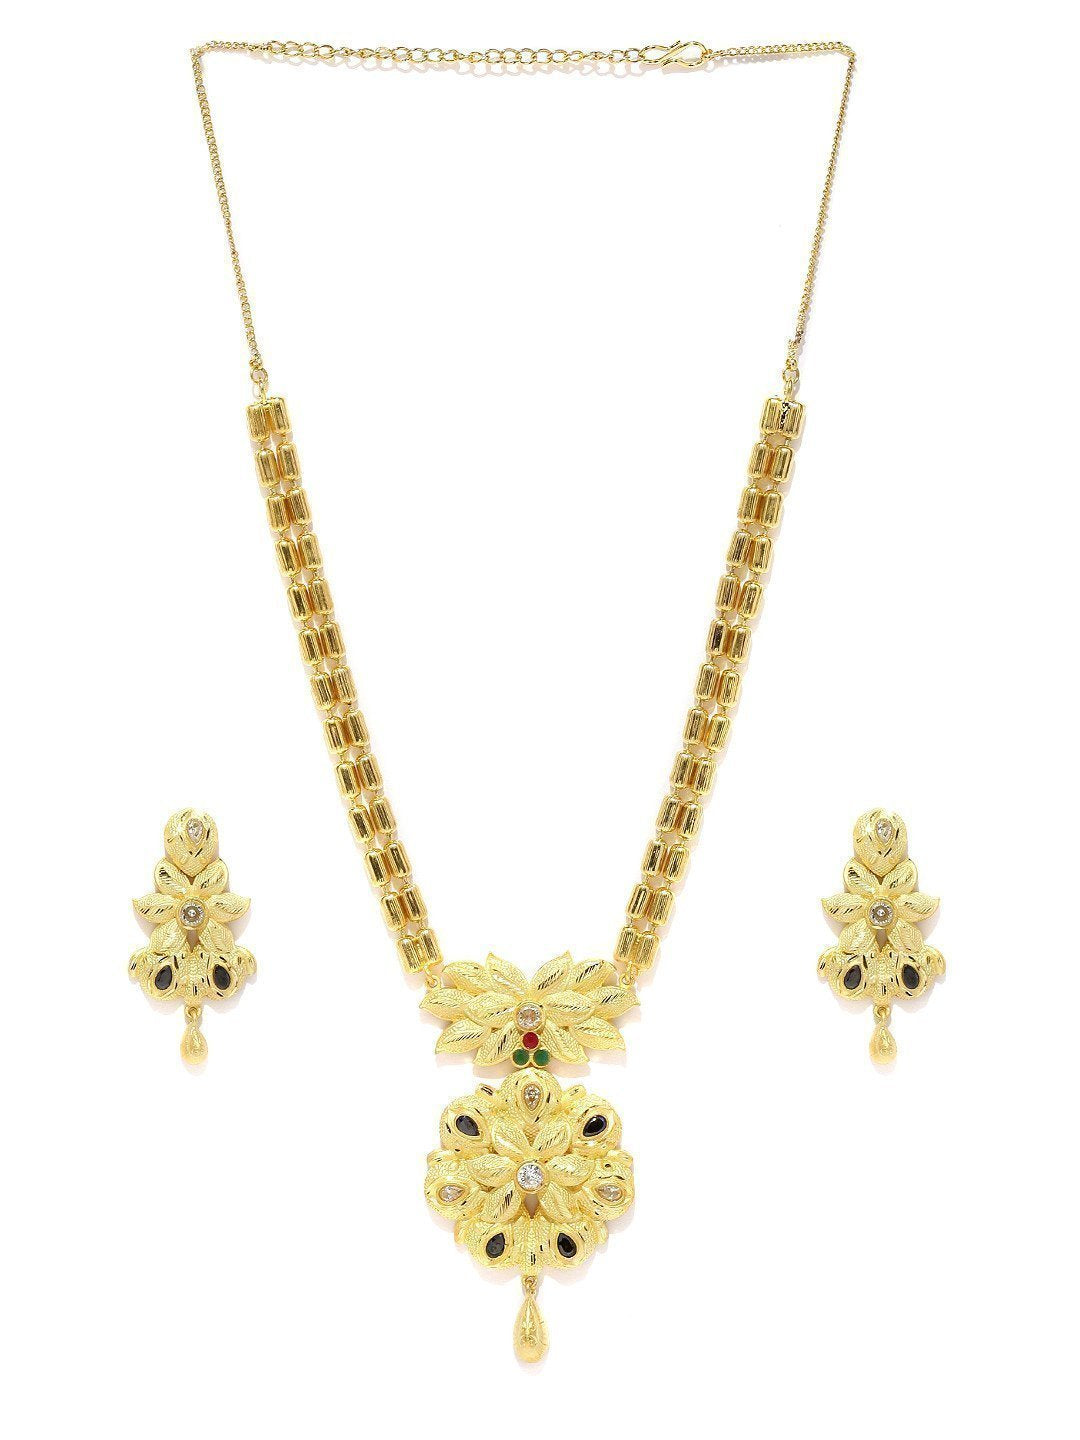 Gold Look Designer Necklace Set - Zpfk5841